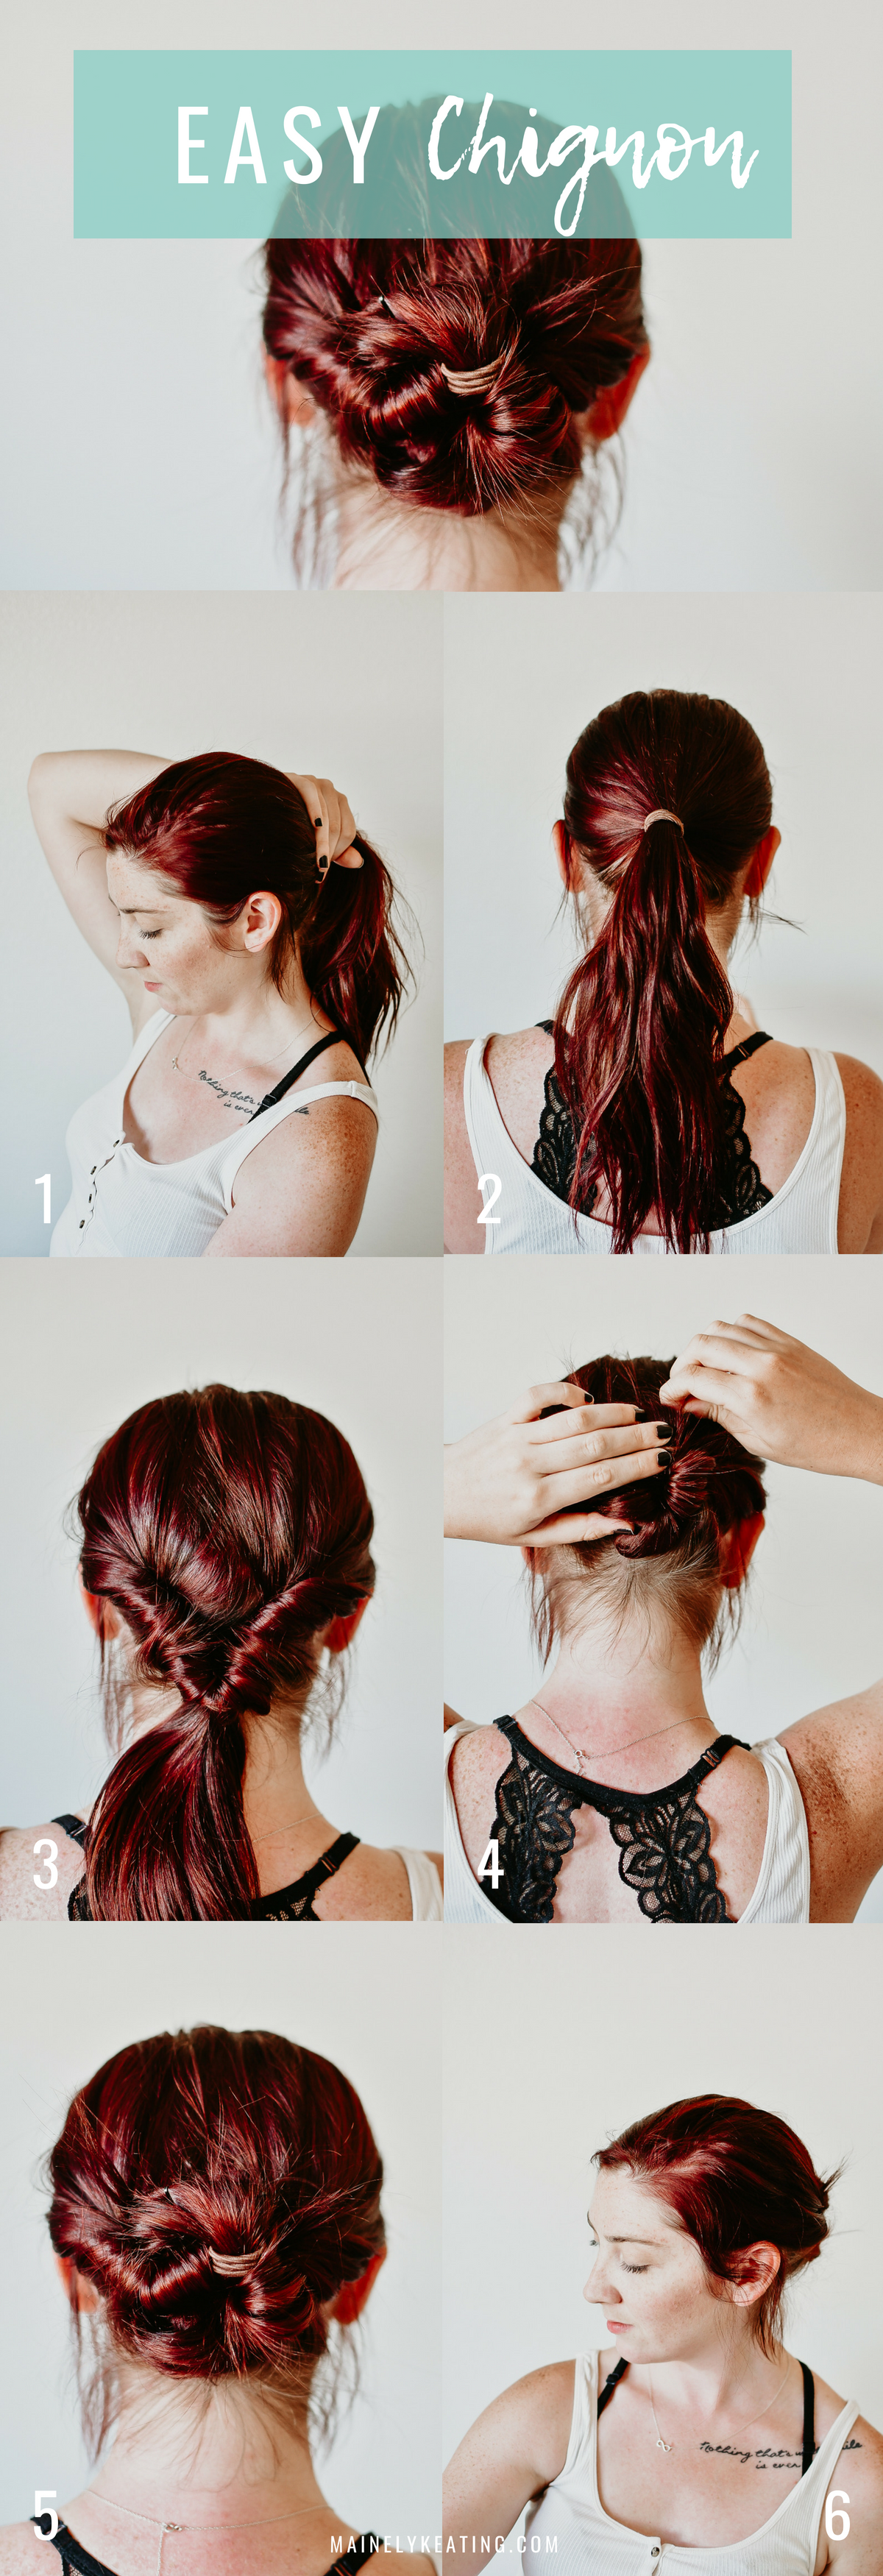 3 Fun and Easy Summer Hairstyles - Easy Chignon